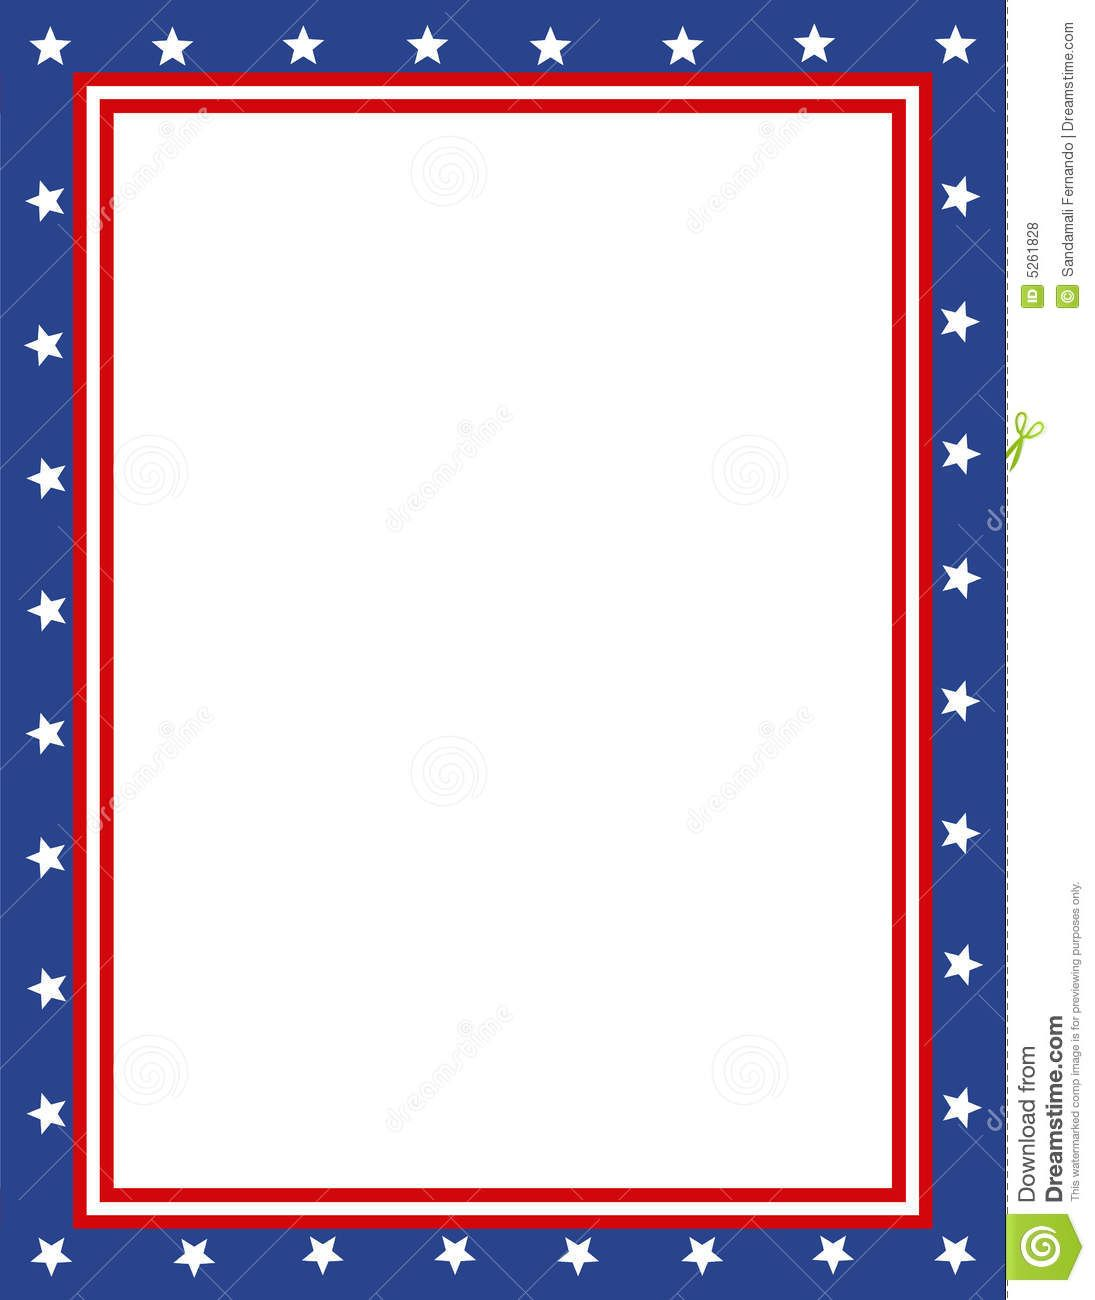 Black and white clipart patriotic single boarder clip art black and white Free Patriotic Page Borders   Patriotic border   borders/frames ... clip art black and white